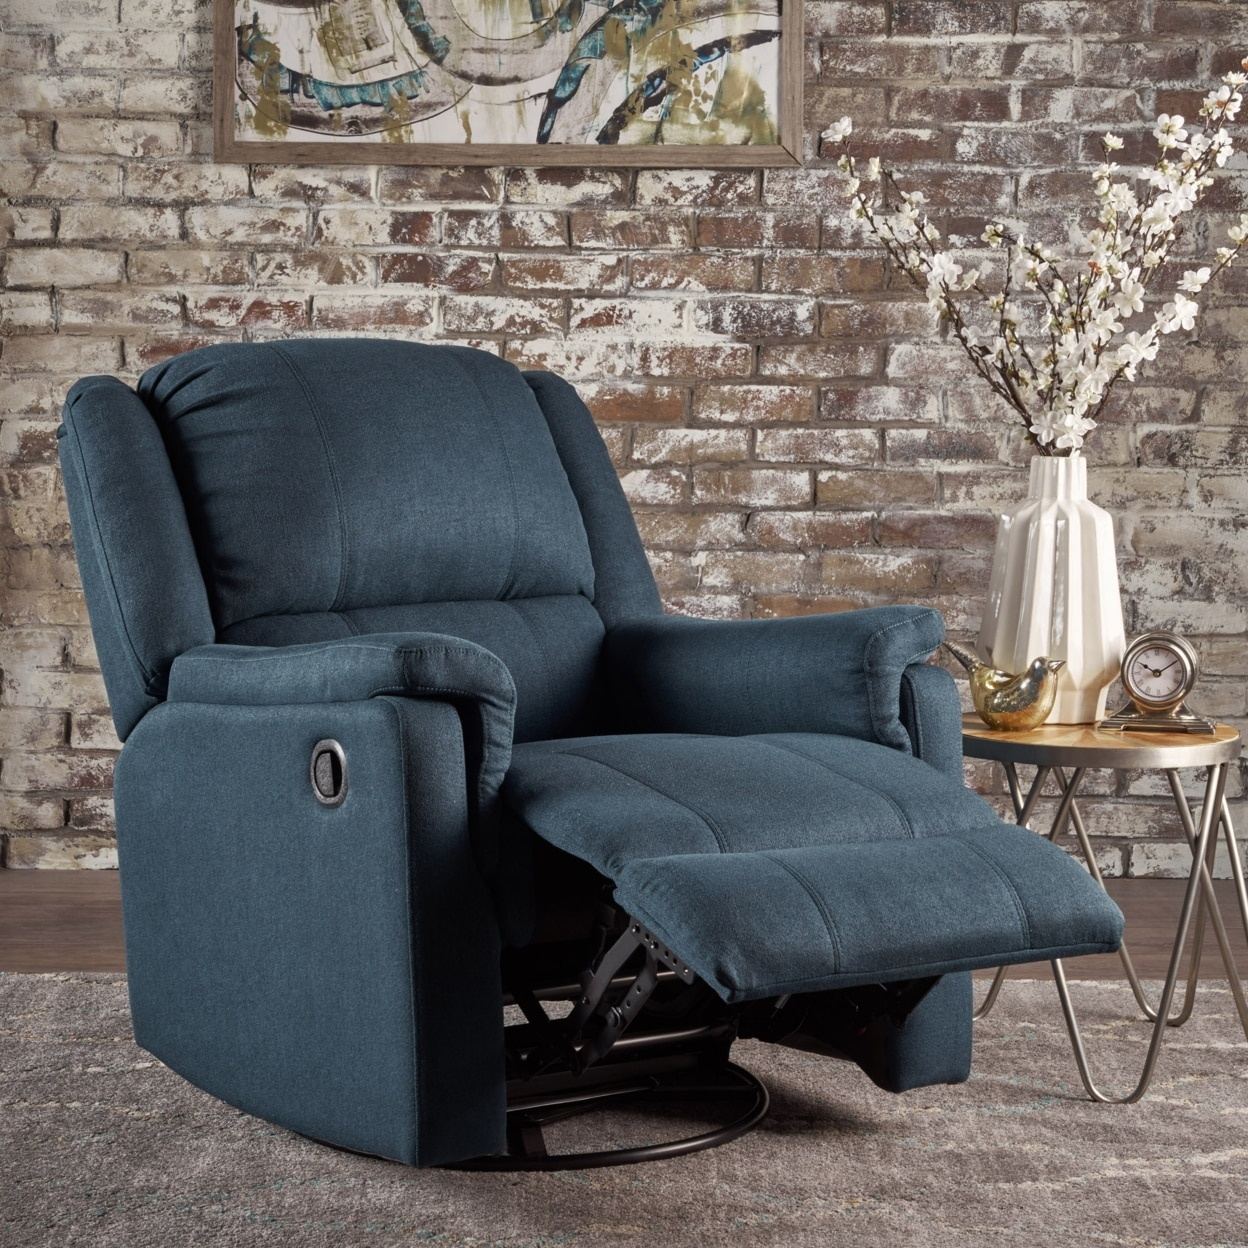 Jemma Tufted Fabric Swivel Gliding Recliner Chair In Living Room Regarding Decker Ii Fabric Swivel Rocker Recliners (Image 8 of 20)